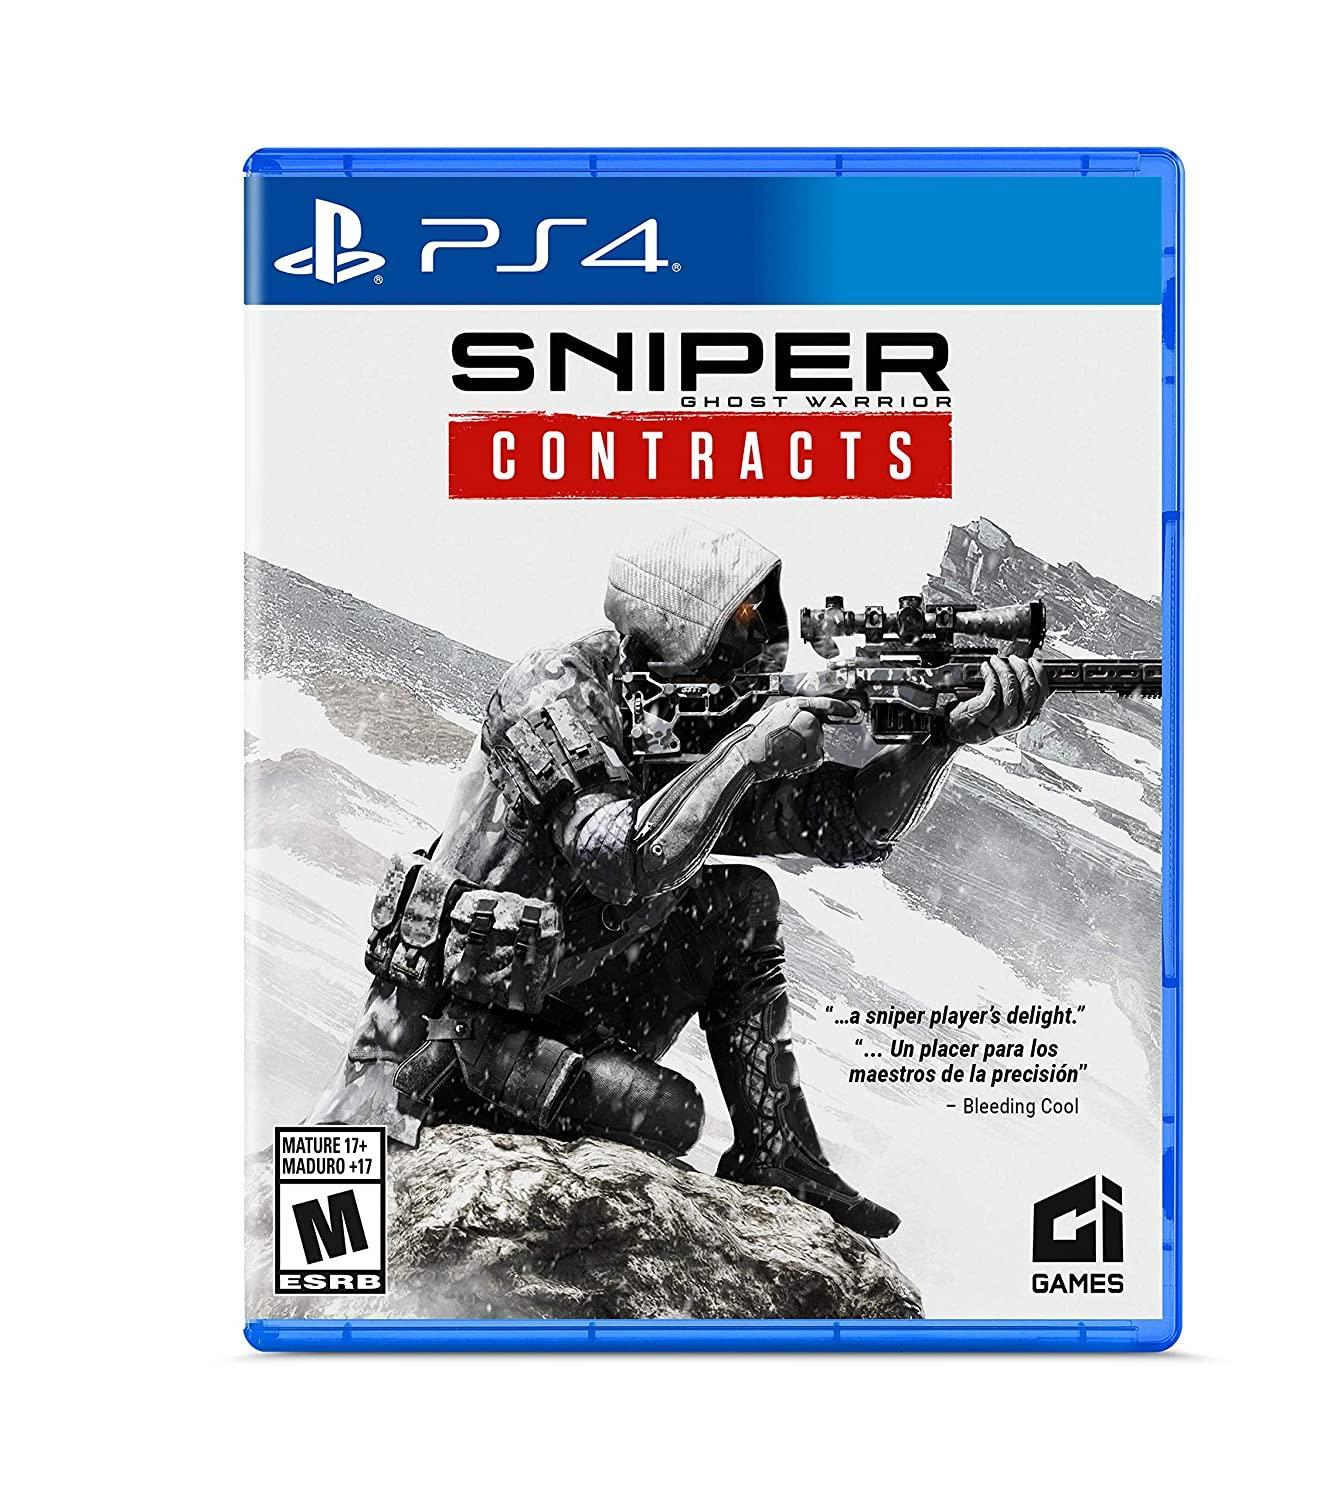 Sniper: Ghost Warrior Contracts - Embody a sniper on very dangerous undercover missions, throughout Siberia